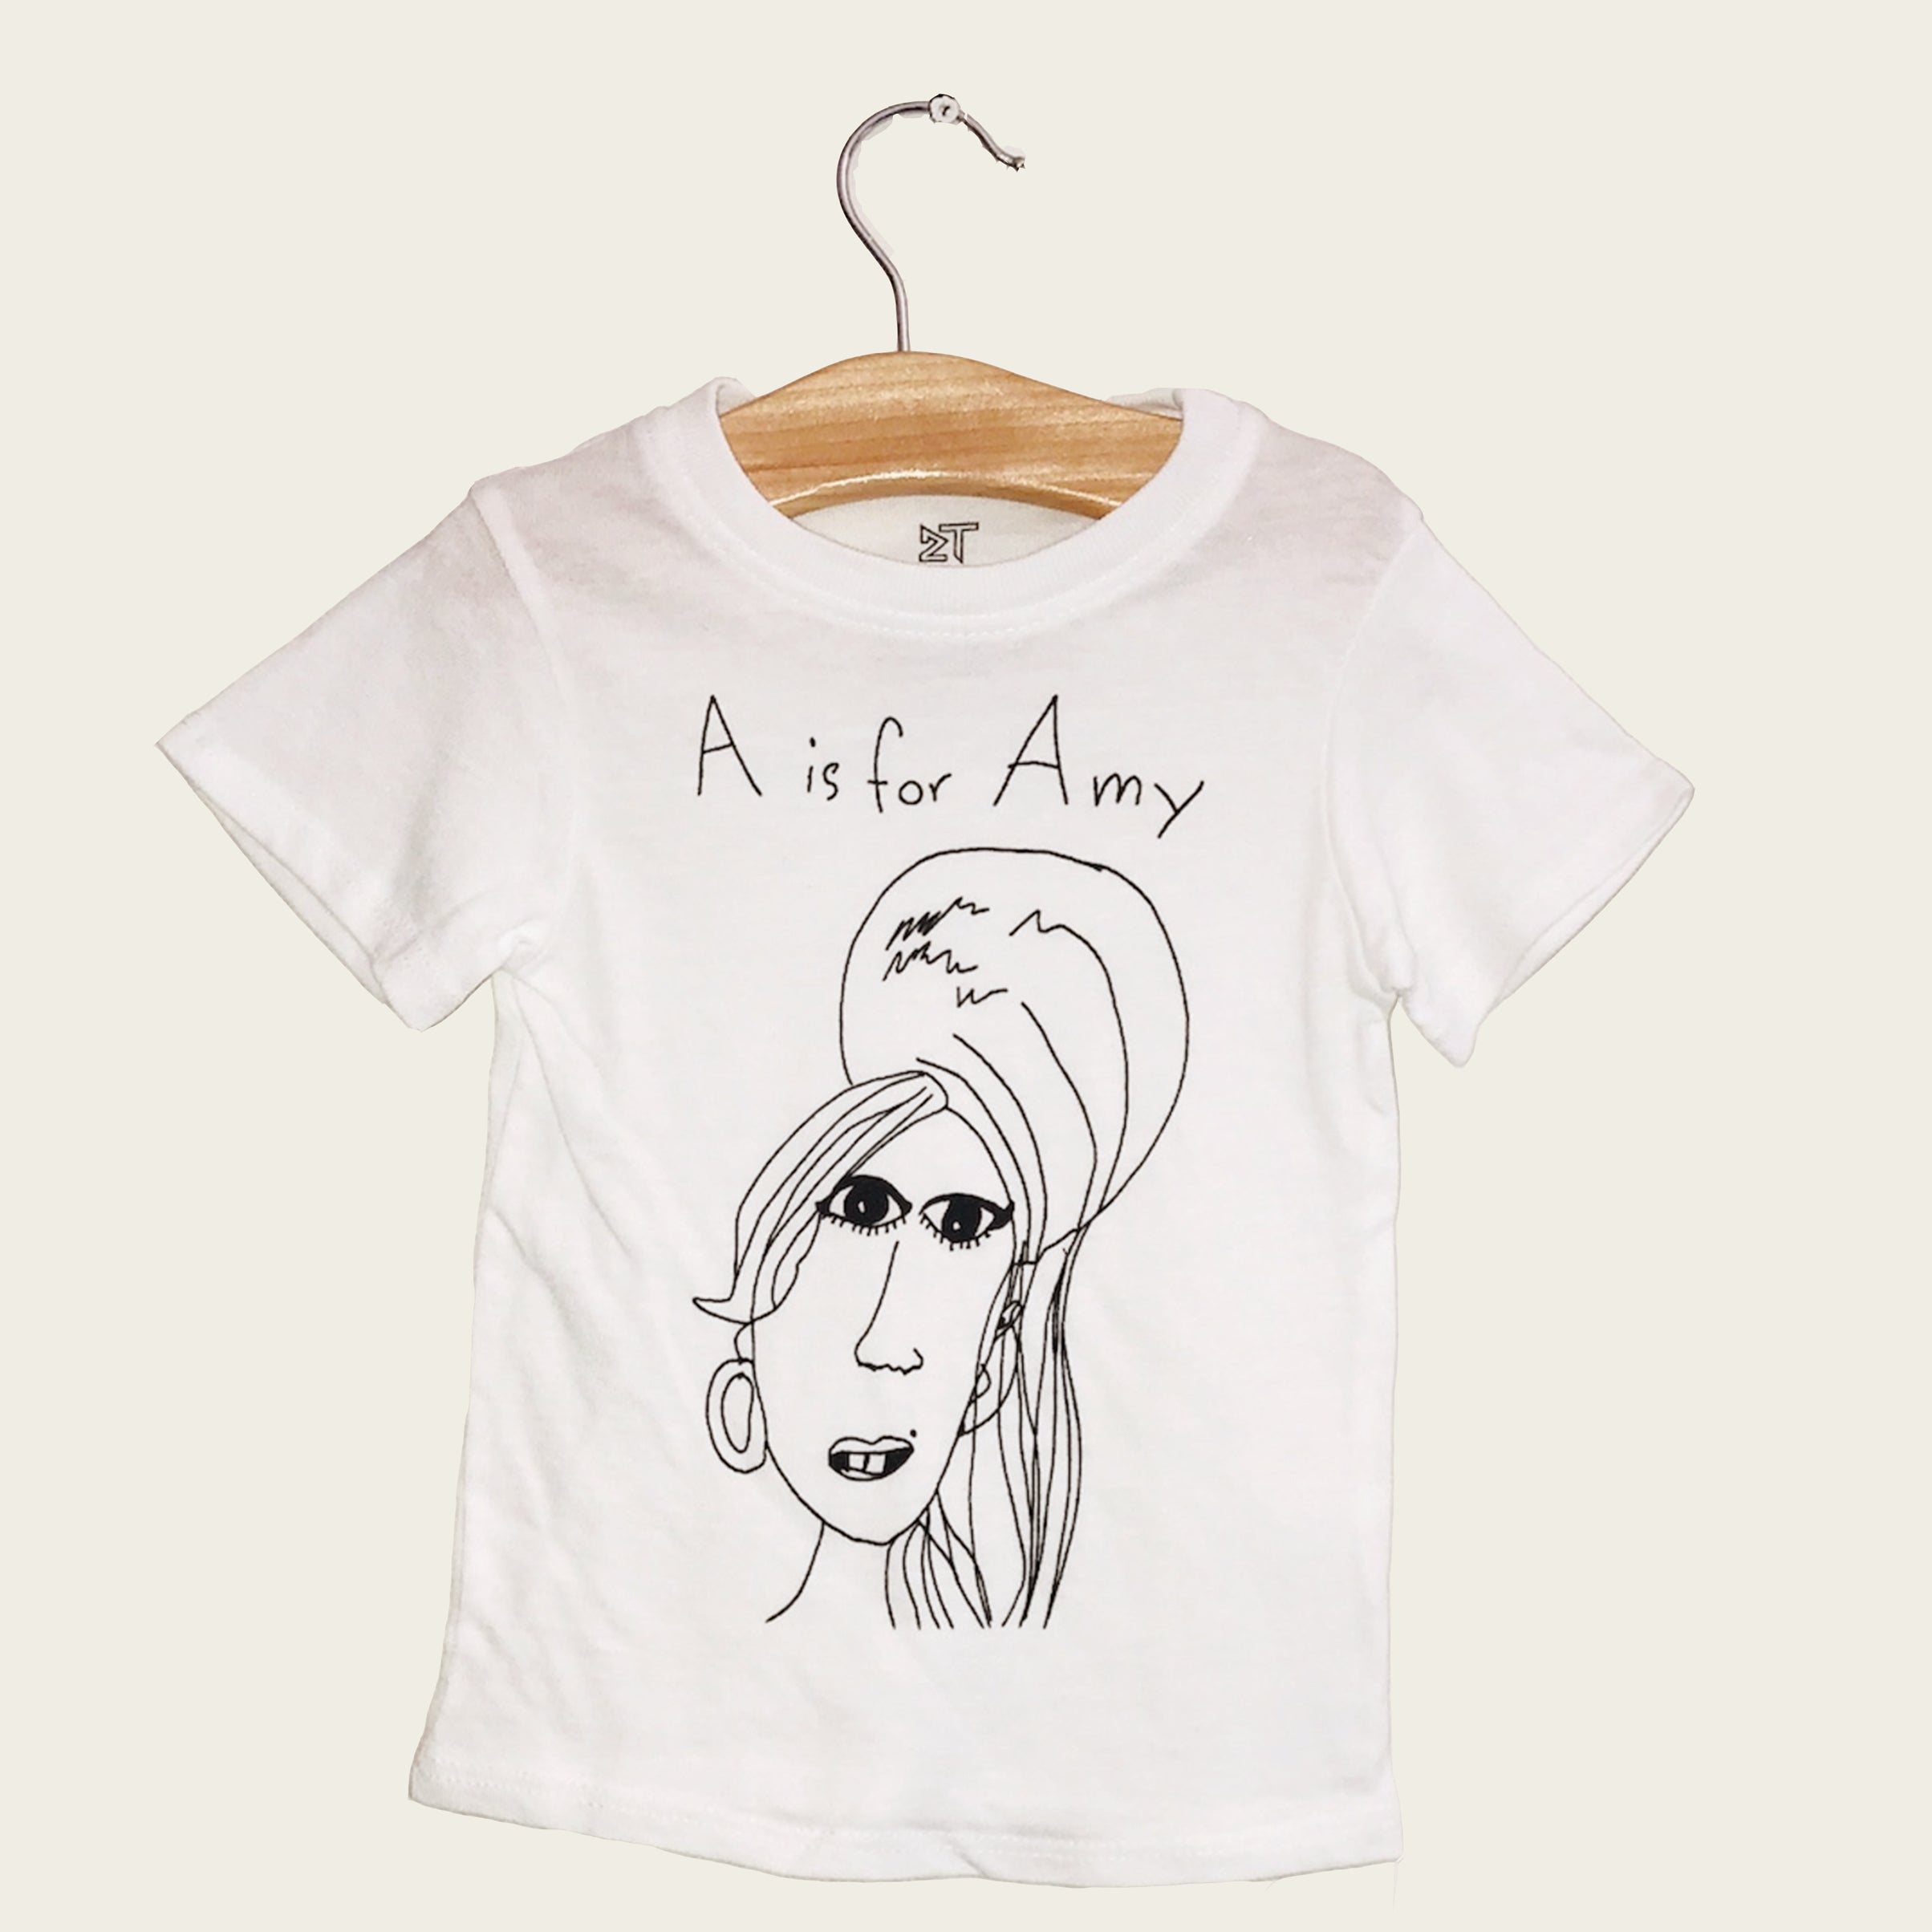 A for Amy White Tee Size 4 - Blackbird General Store